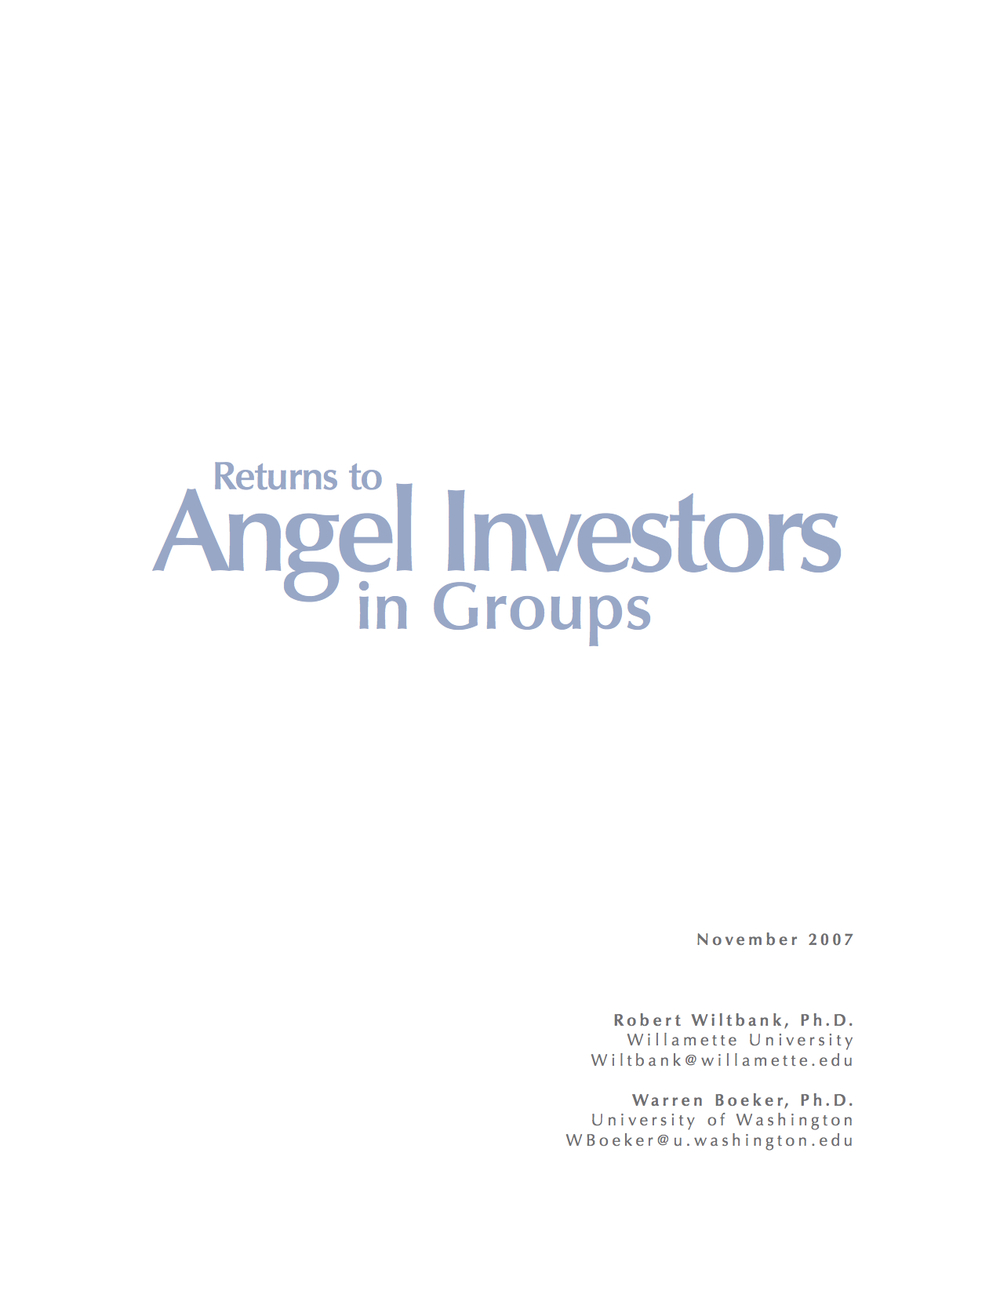 Returns to Angel Investors in Groups jpeg.jpg